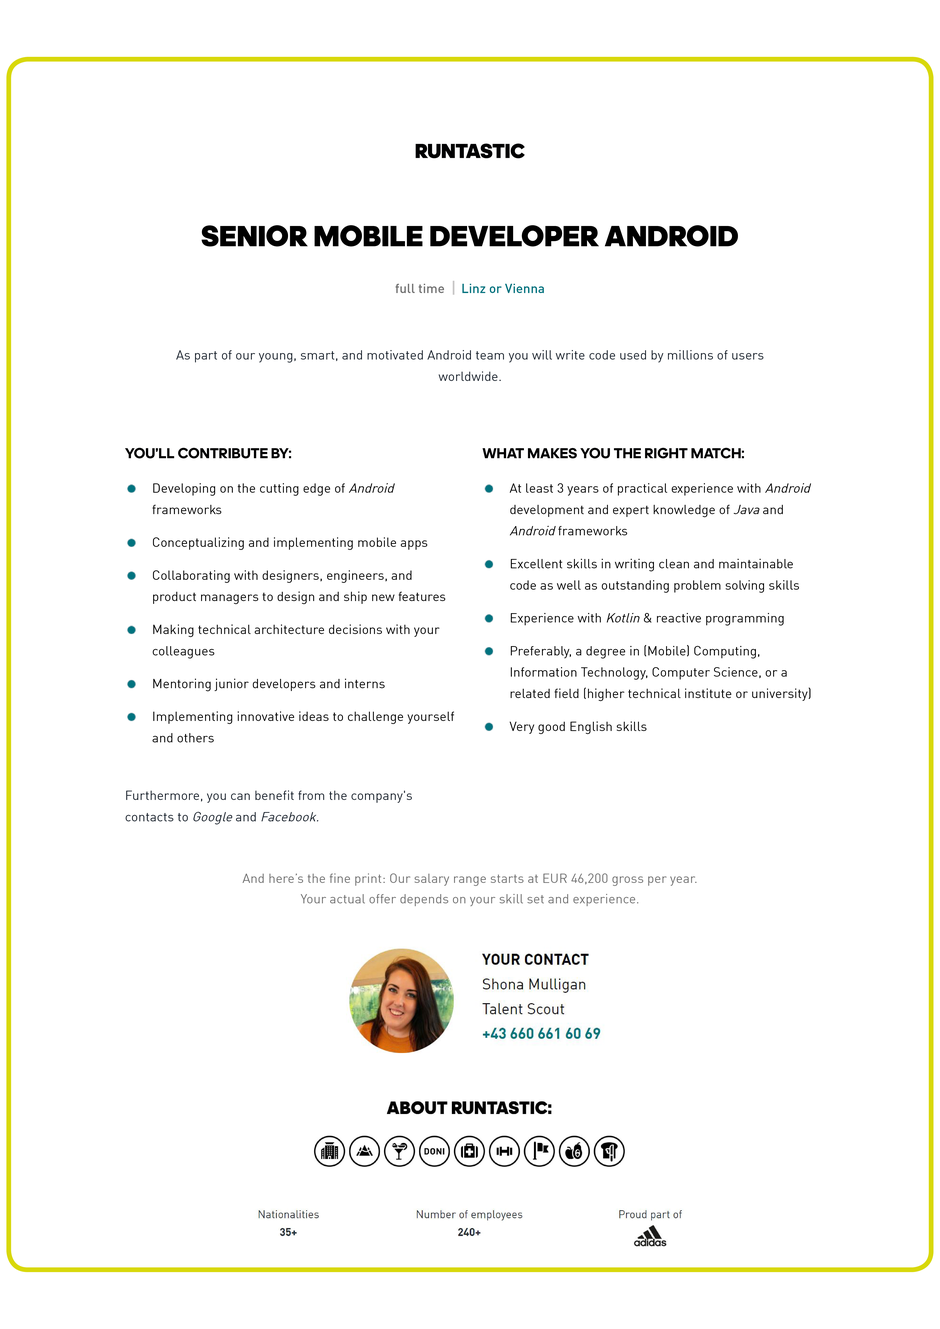 Software Developer Jobs - Senior Mobile Developer Android - Runtastic GmbH - Linz - Oberösterreich - 1